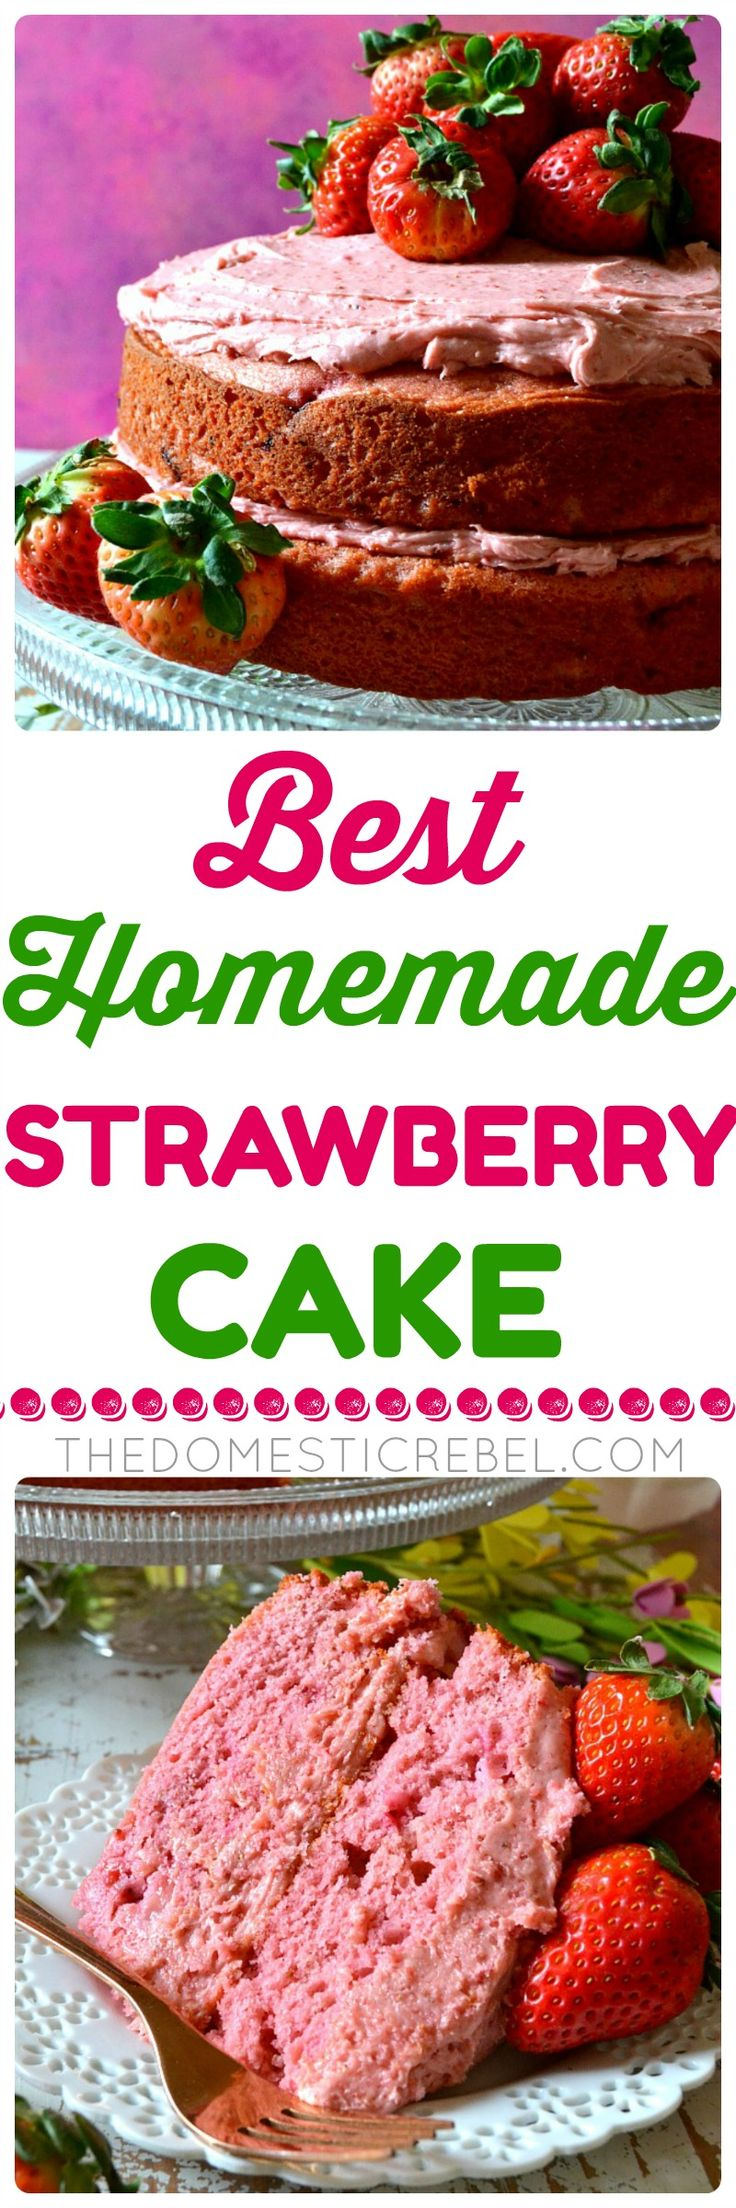 This is the BEST Homemade Strawberry Cake I've ever tried! Moist, fluffy layers of flavorful strawberry buttermilk cake layered with a decadent strawberry cream cheese frosting. So delicious and easy! ~ The Domestic Rebel